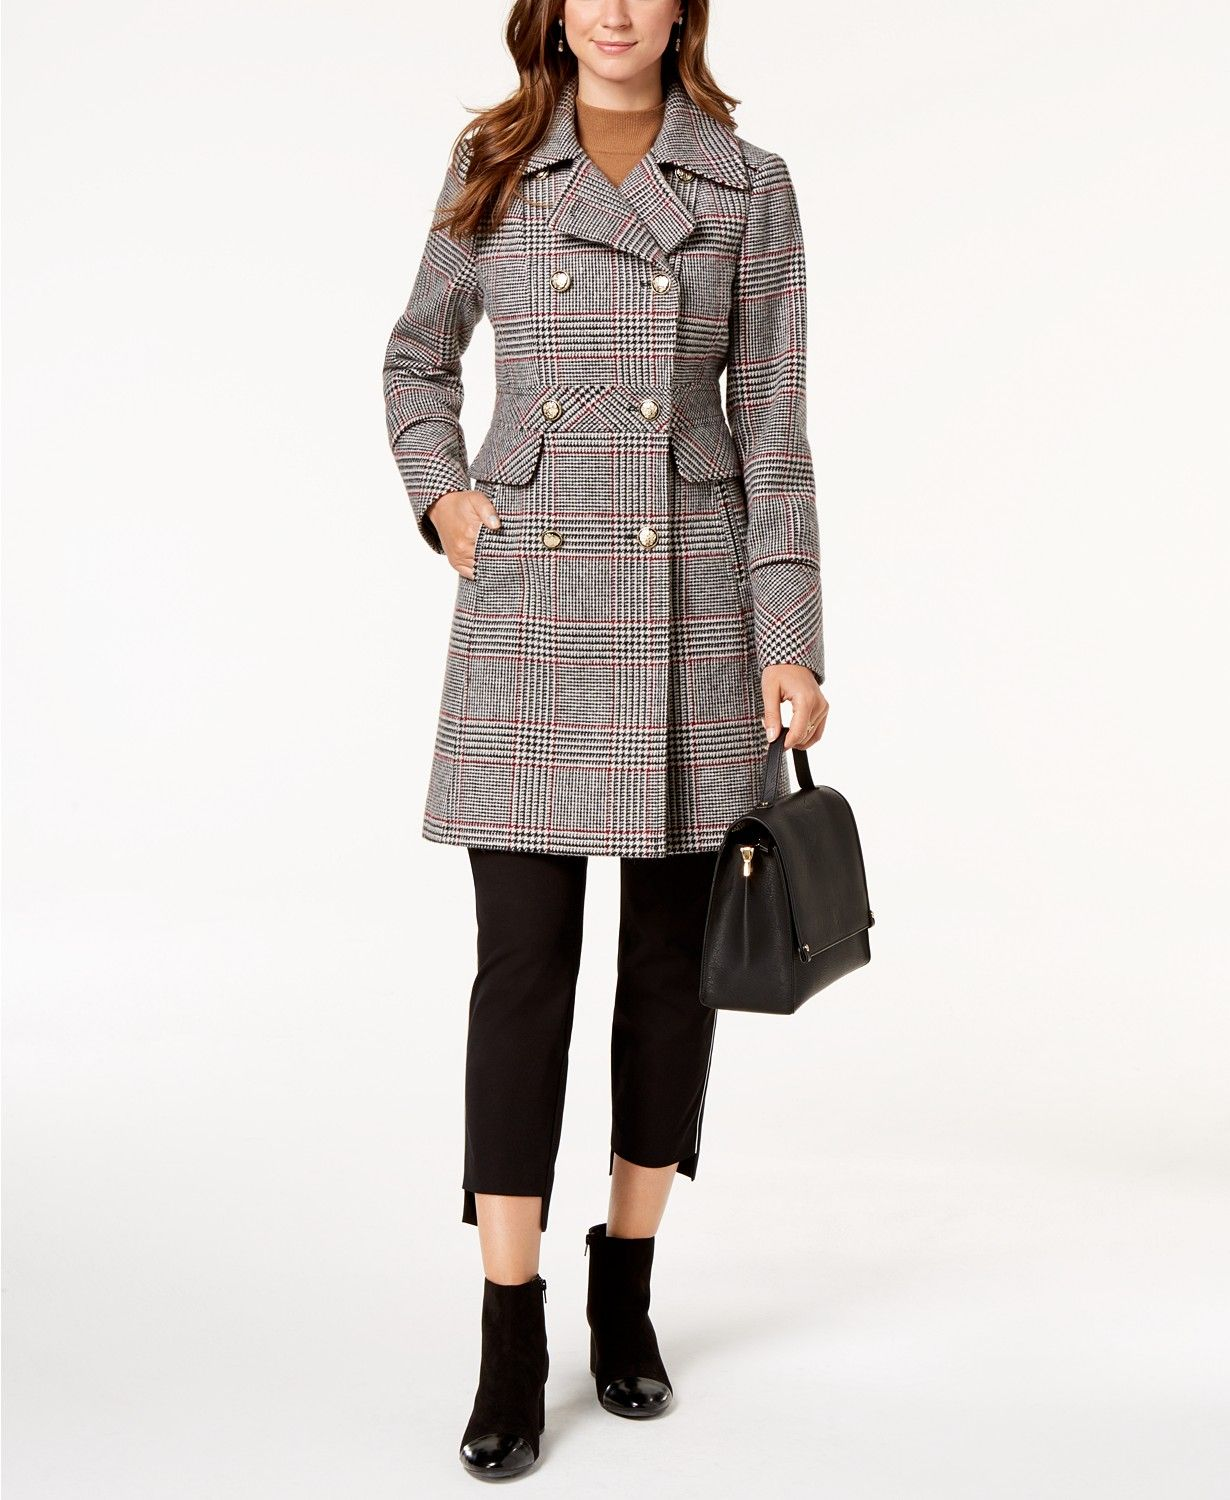 dfbefb6b5a871 Vince Camuto Wing-Collar Military Coat in 2019 | Fashion | Coat ...